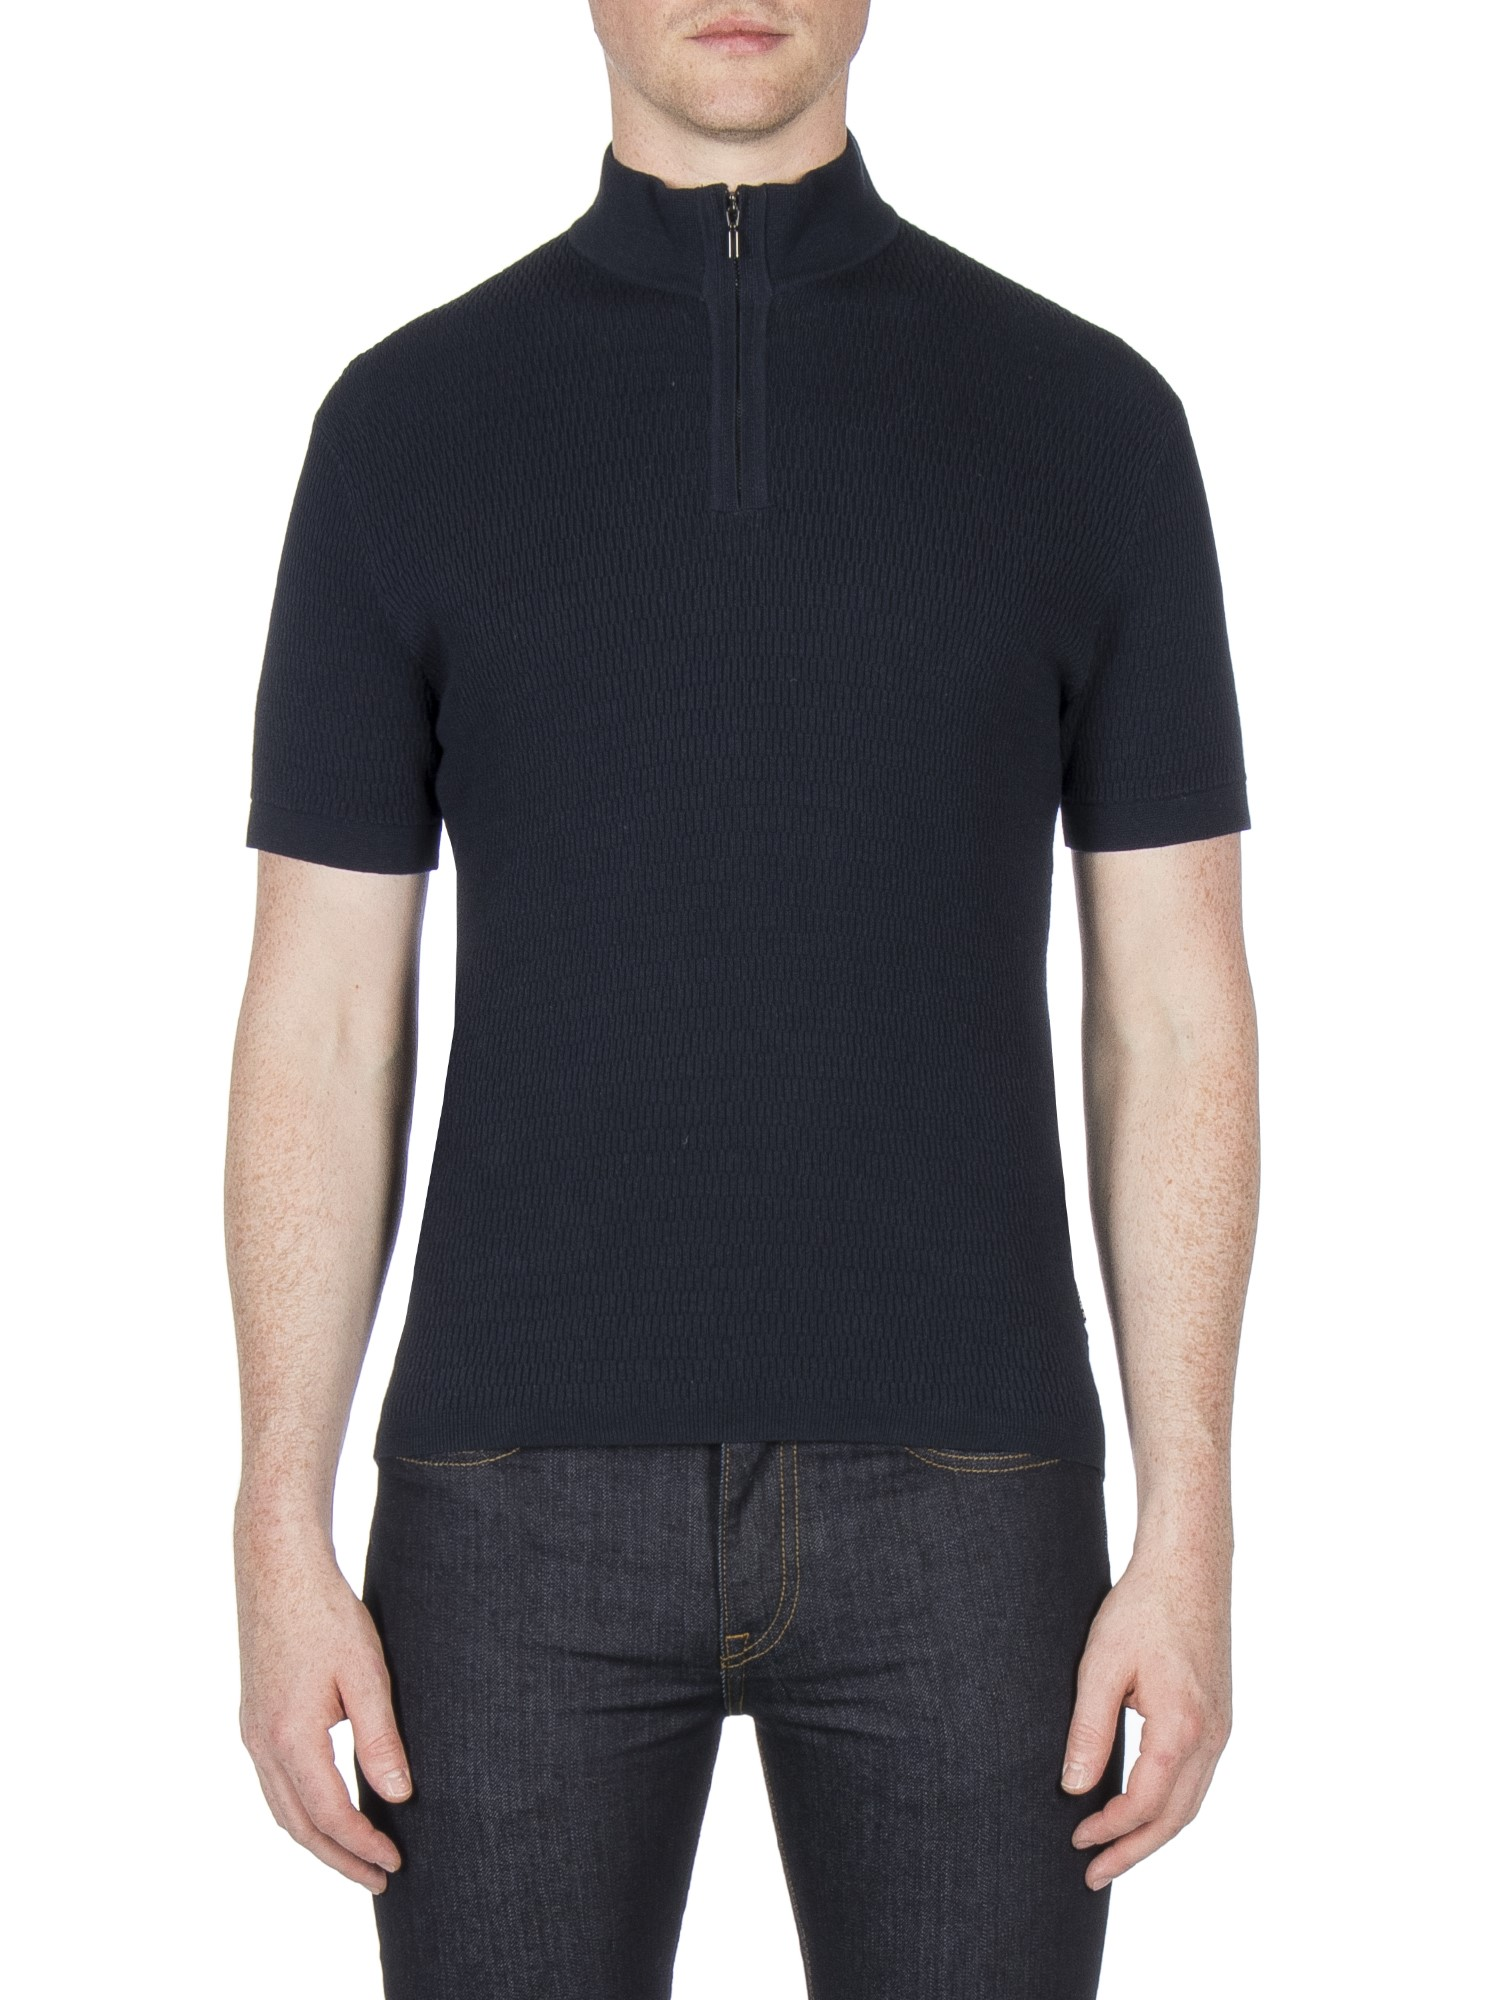 Ben Sherman Navy Funnel Neck Knitted Polo Regular Fit (Mod Fit)